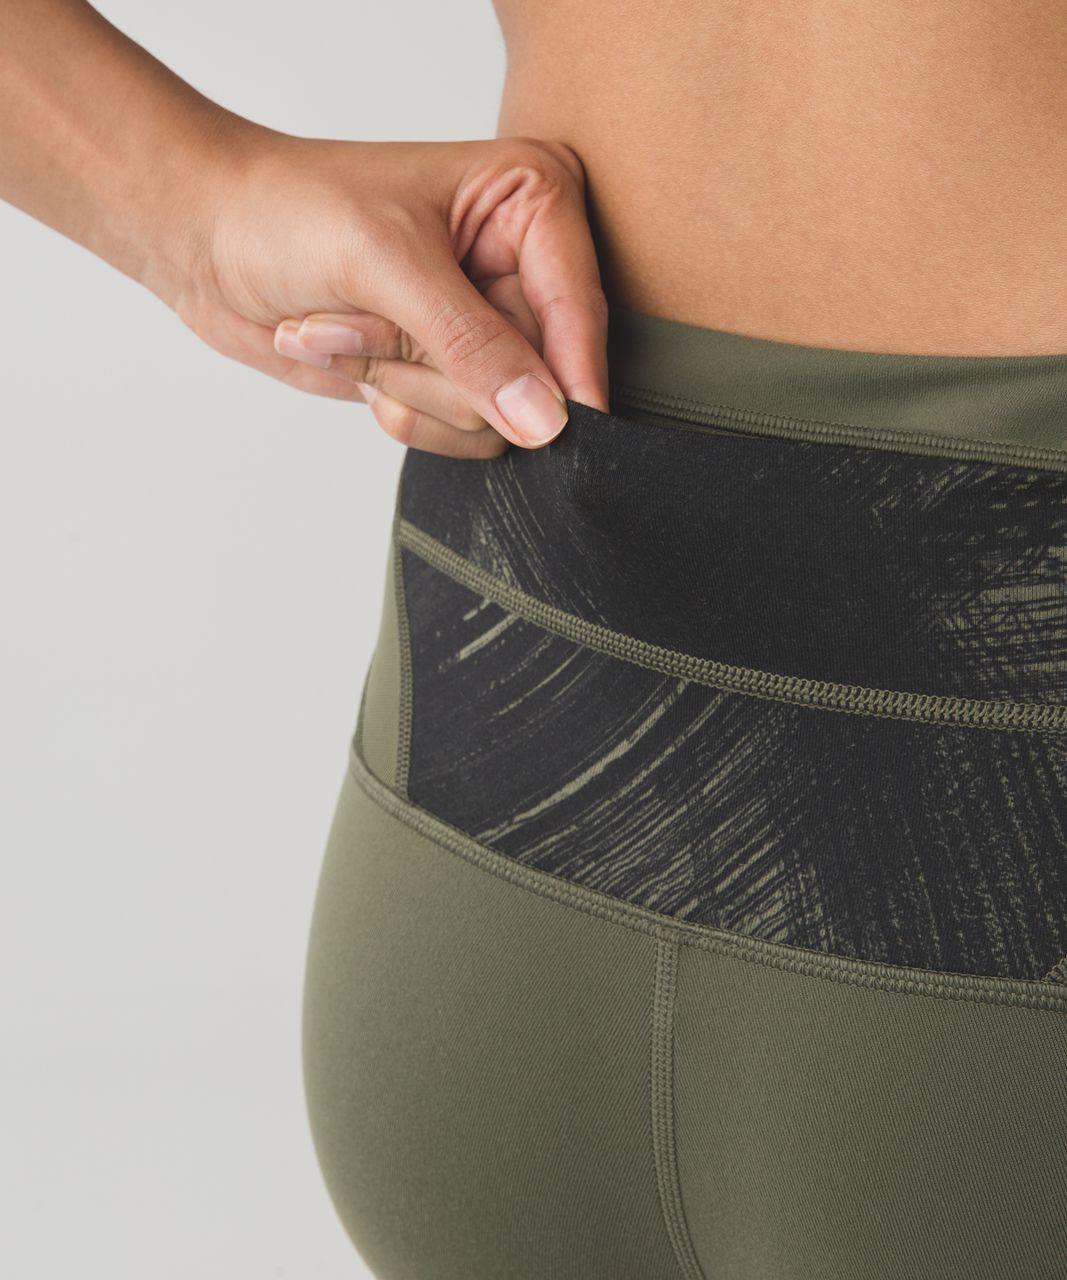 Lululemon Wunder Under Crop (Hi-Rise) *Full-On Luon - Fatigue Green / Wind Chill Fatigue Green Black